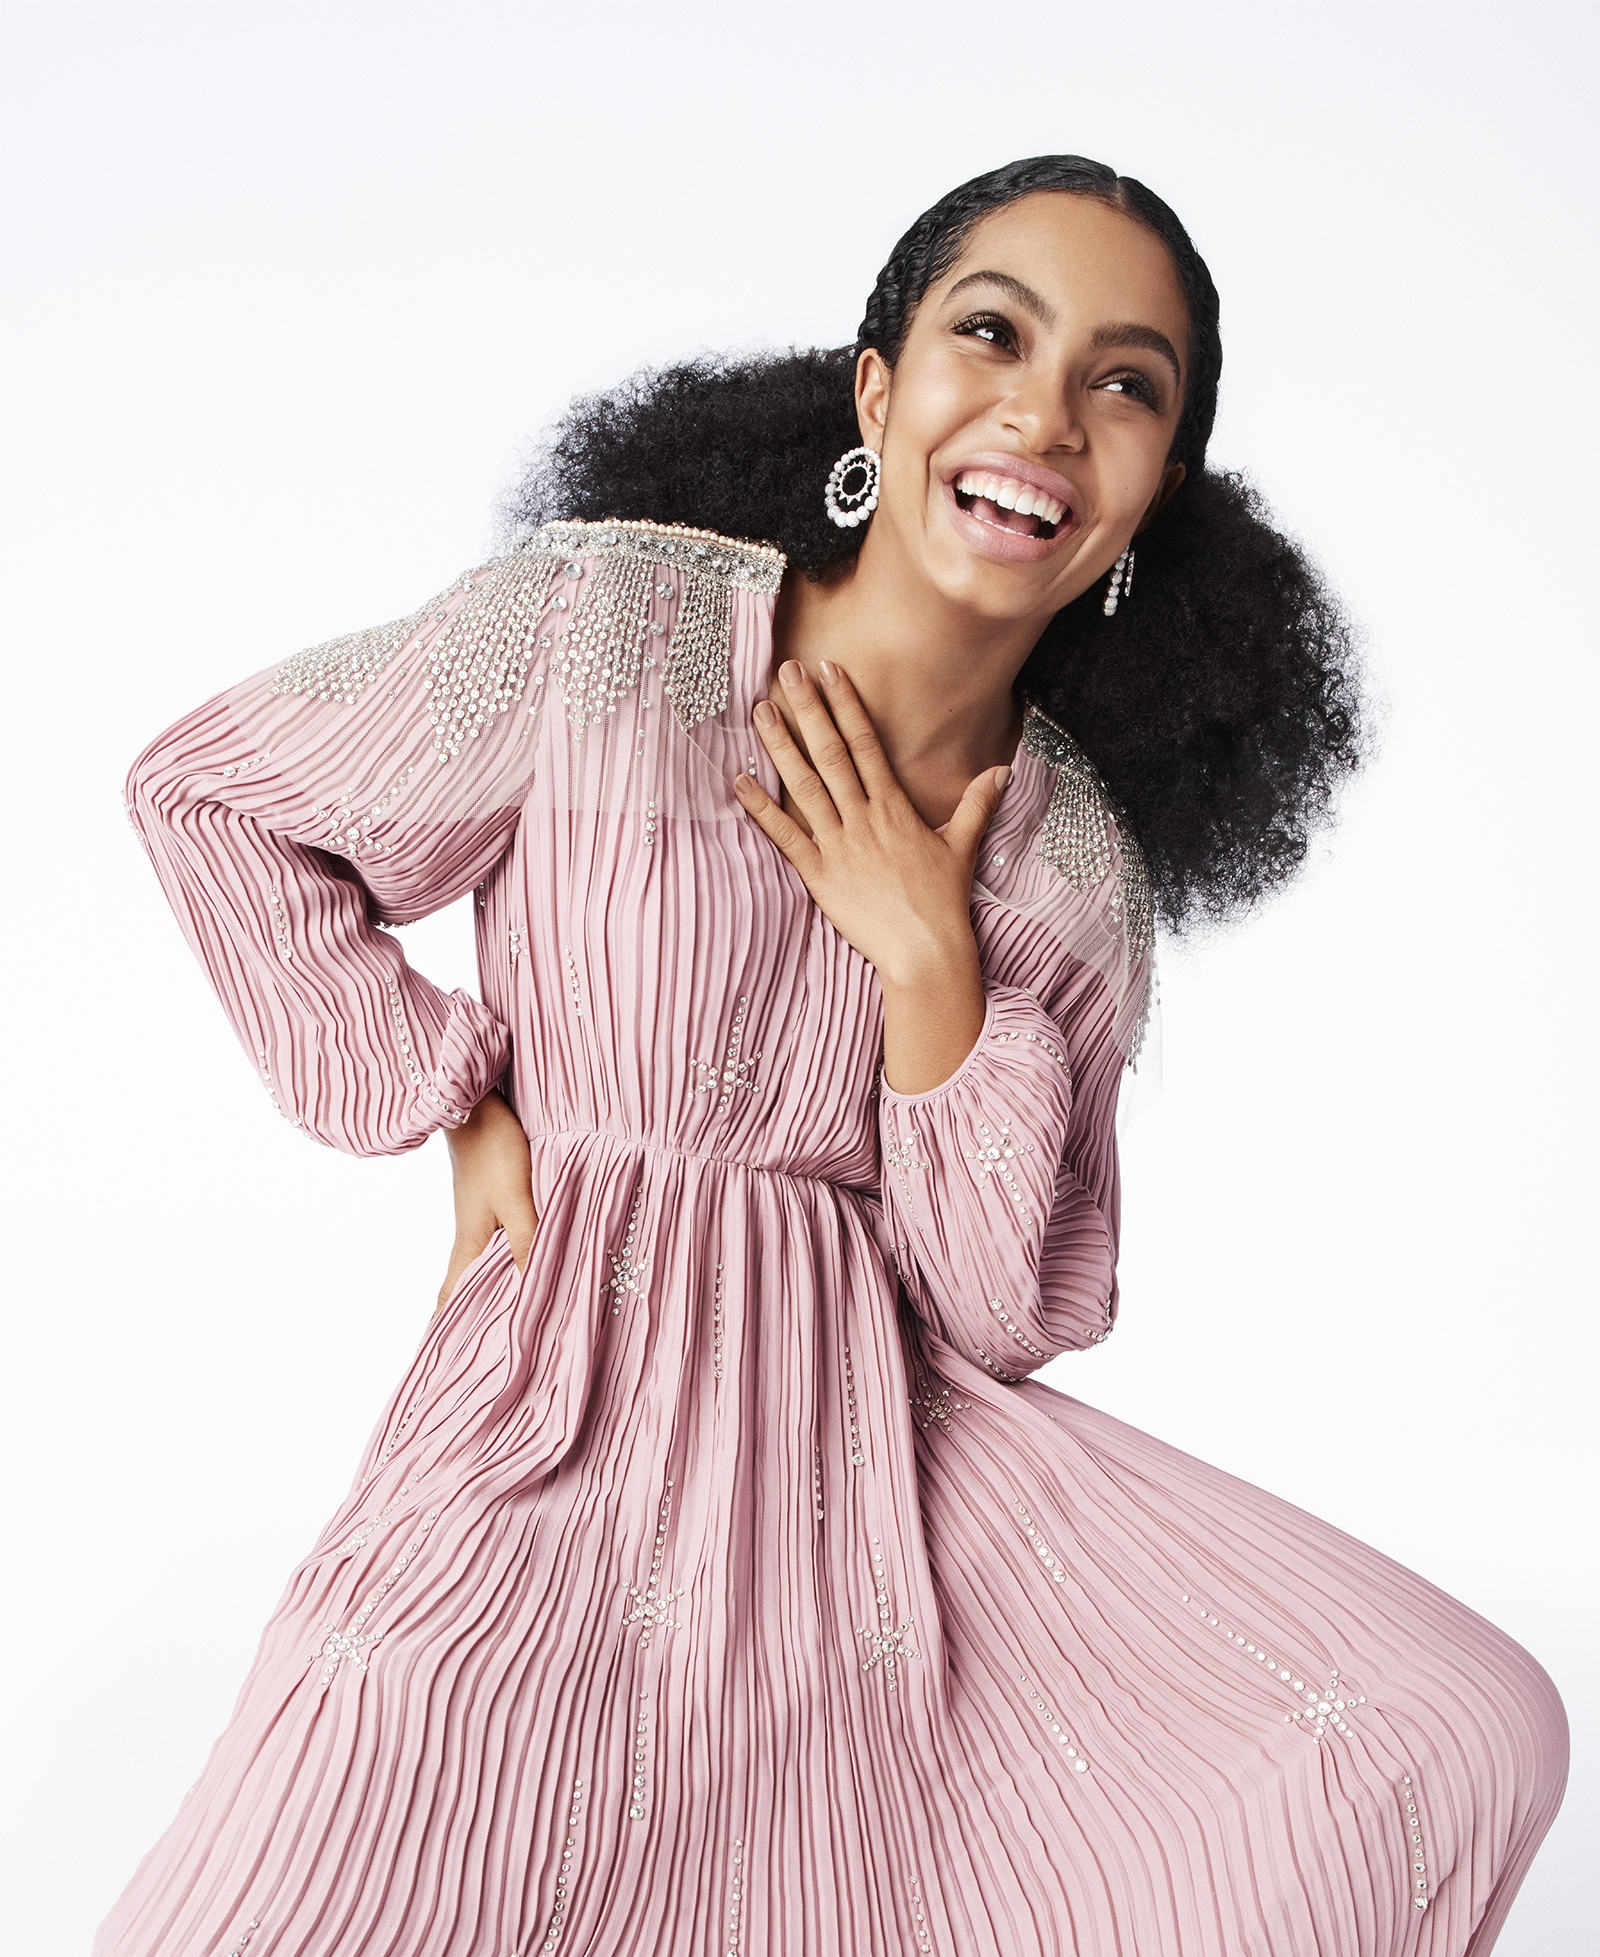 Yara Shahidi for VANITY FAIR